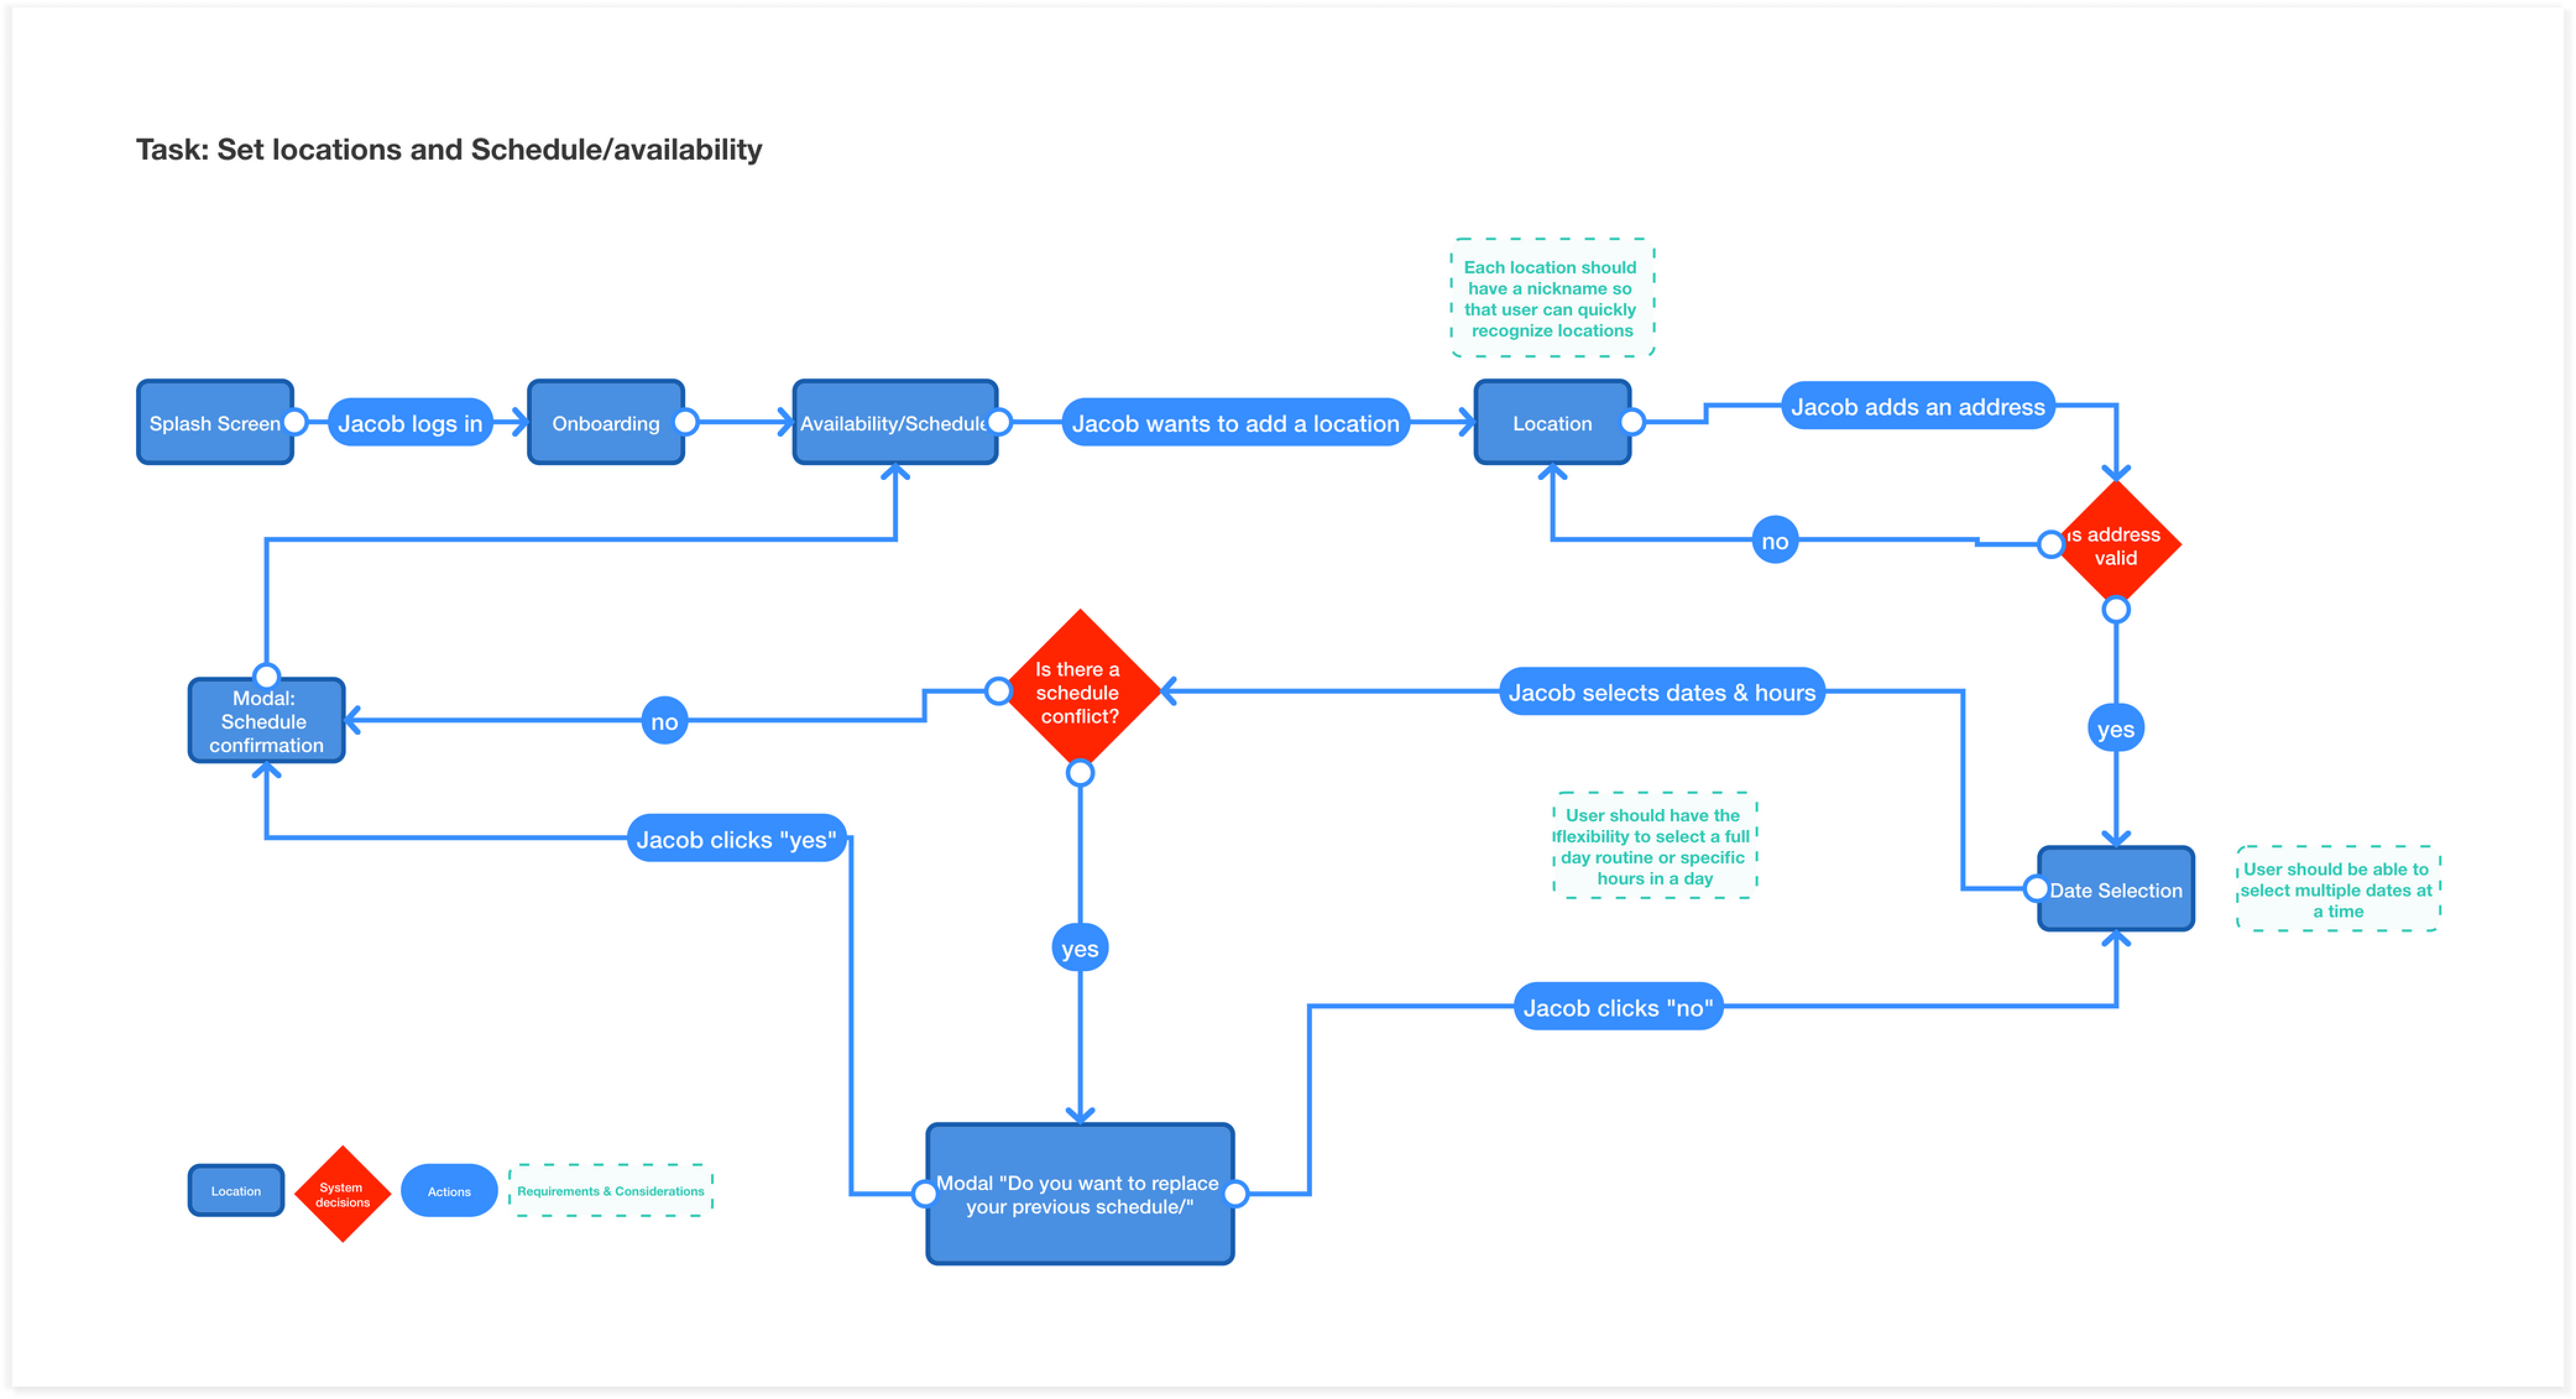 Fig 4: The Task flow - Set locations & schedules